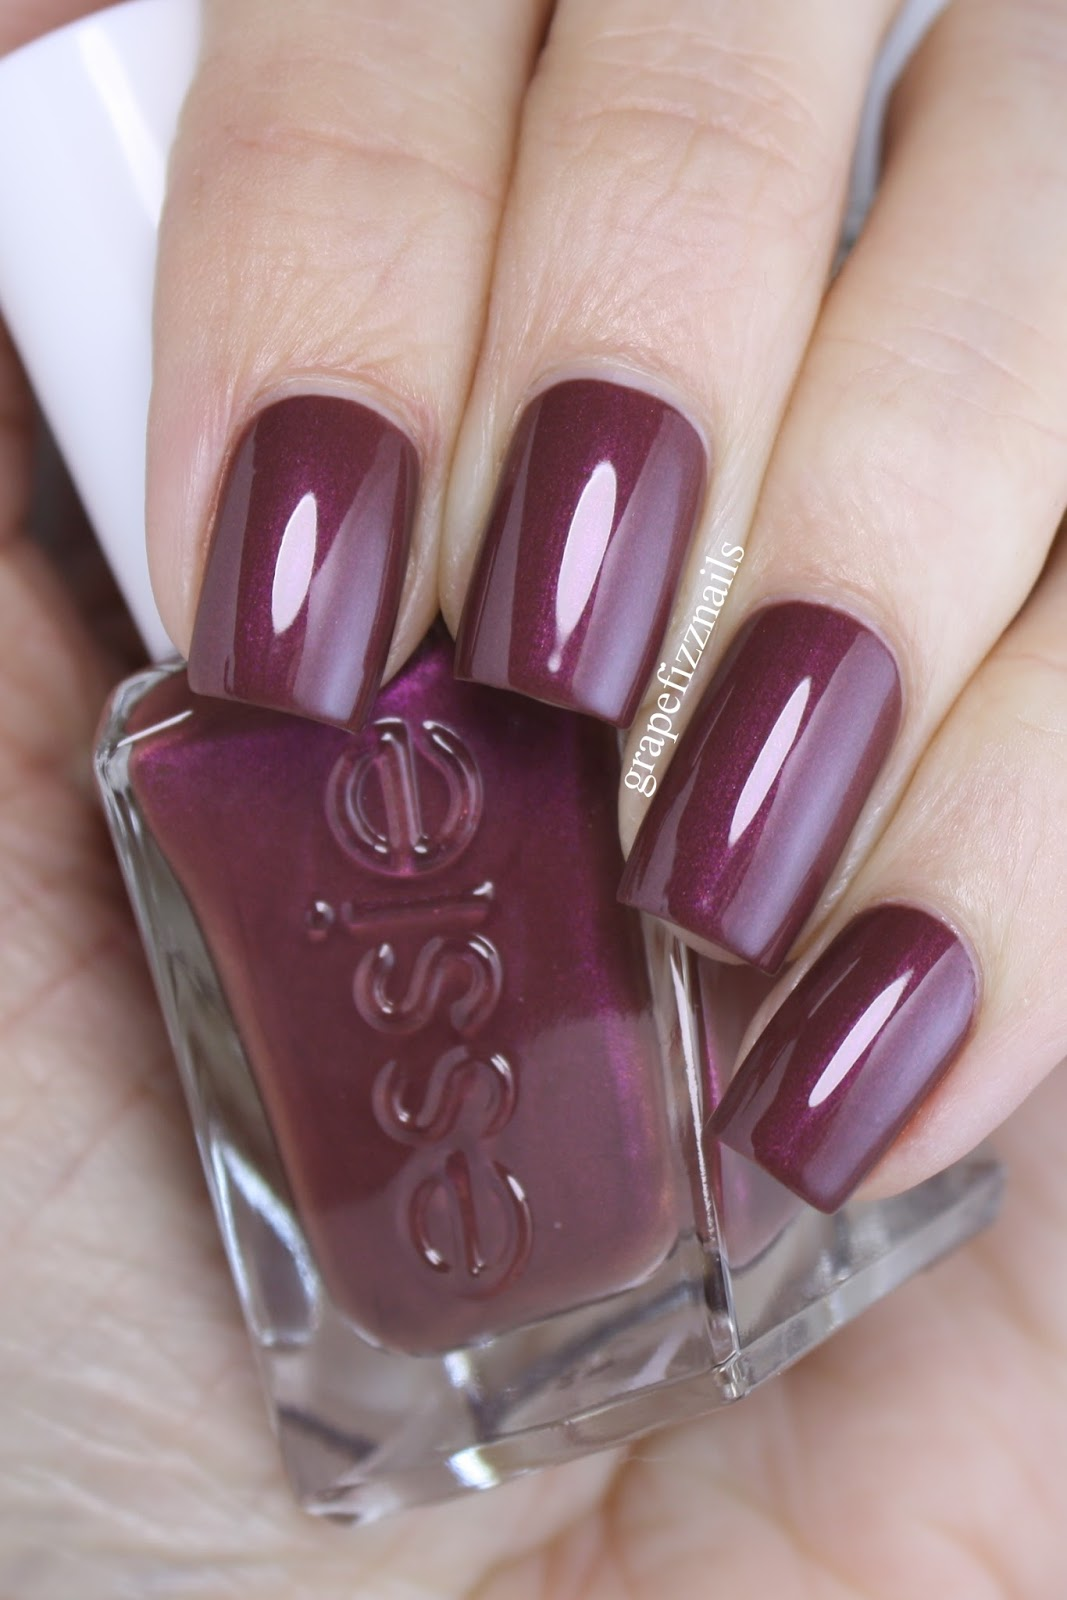 Grape Fizz Nails: Essie Gel Couture, Pearls of Wisdom